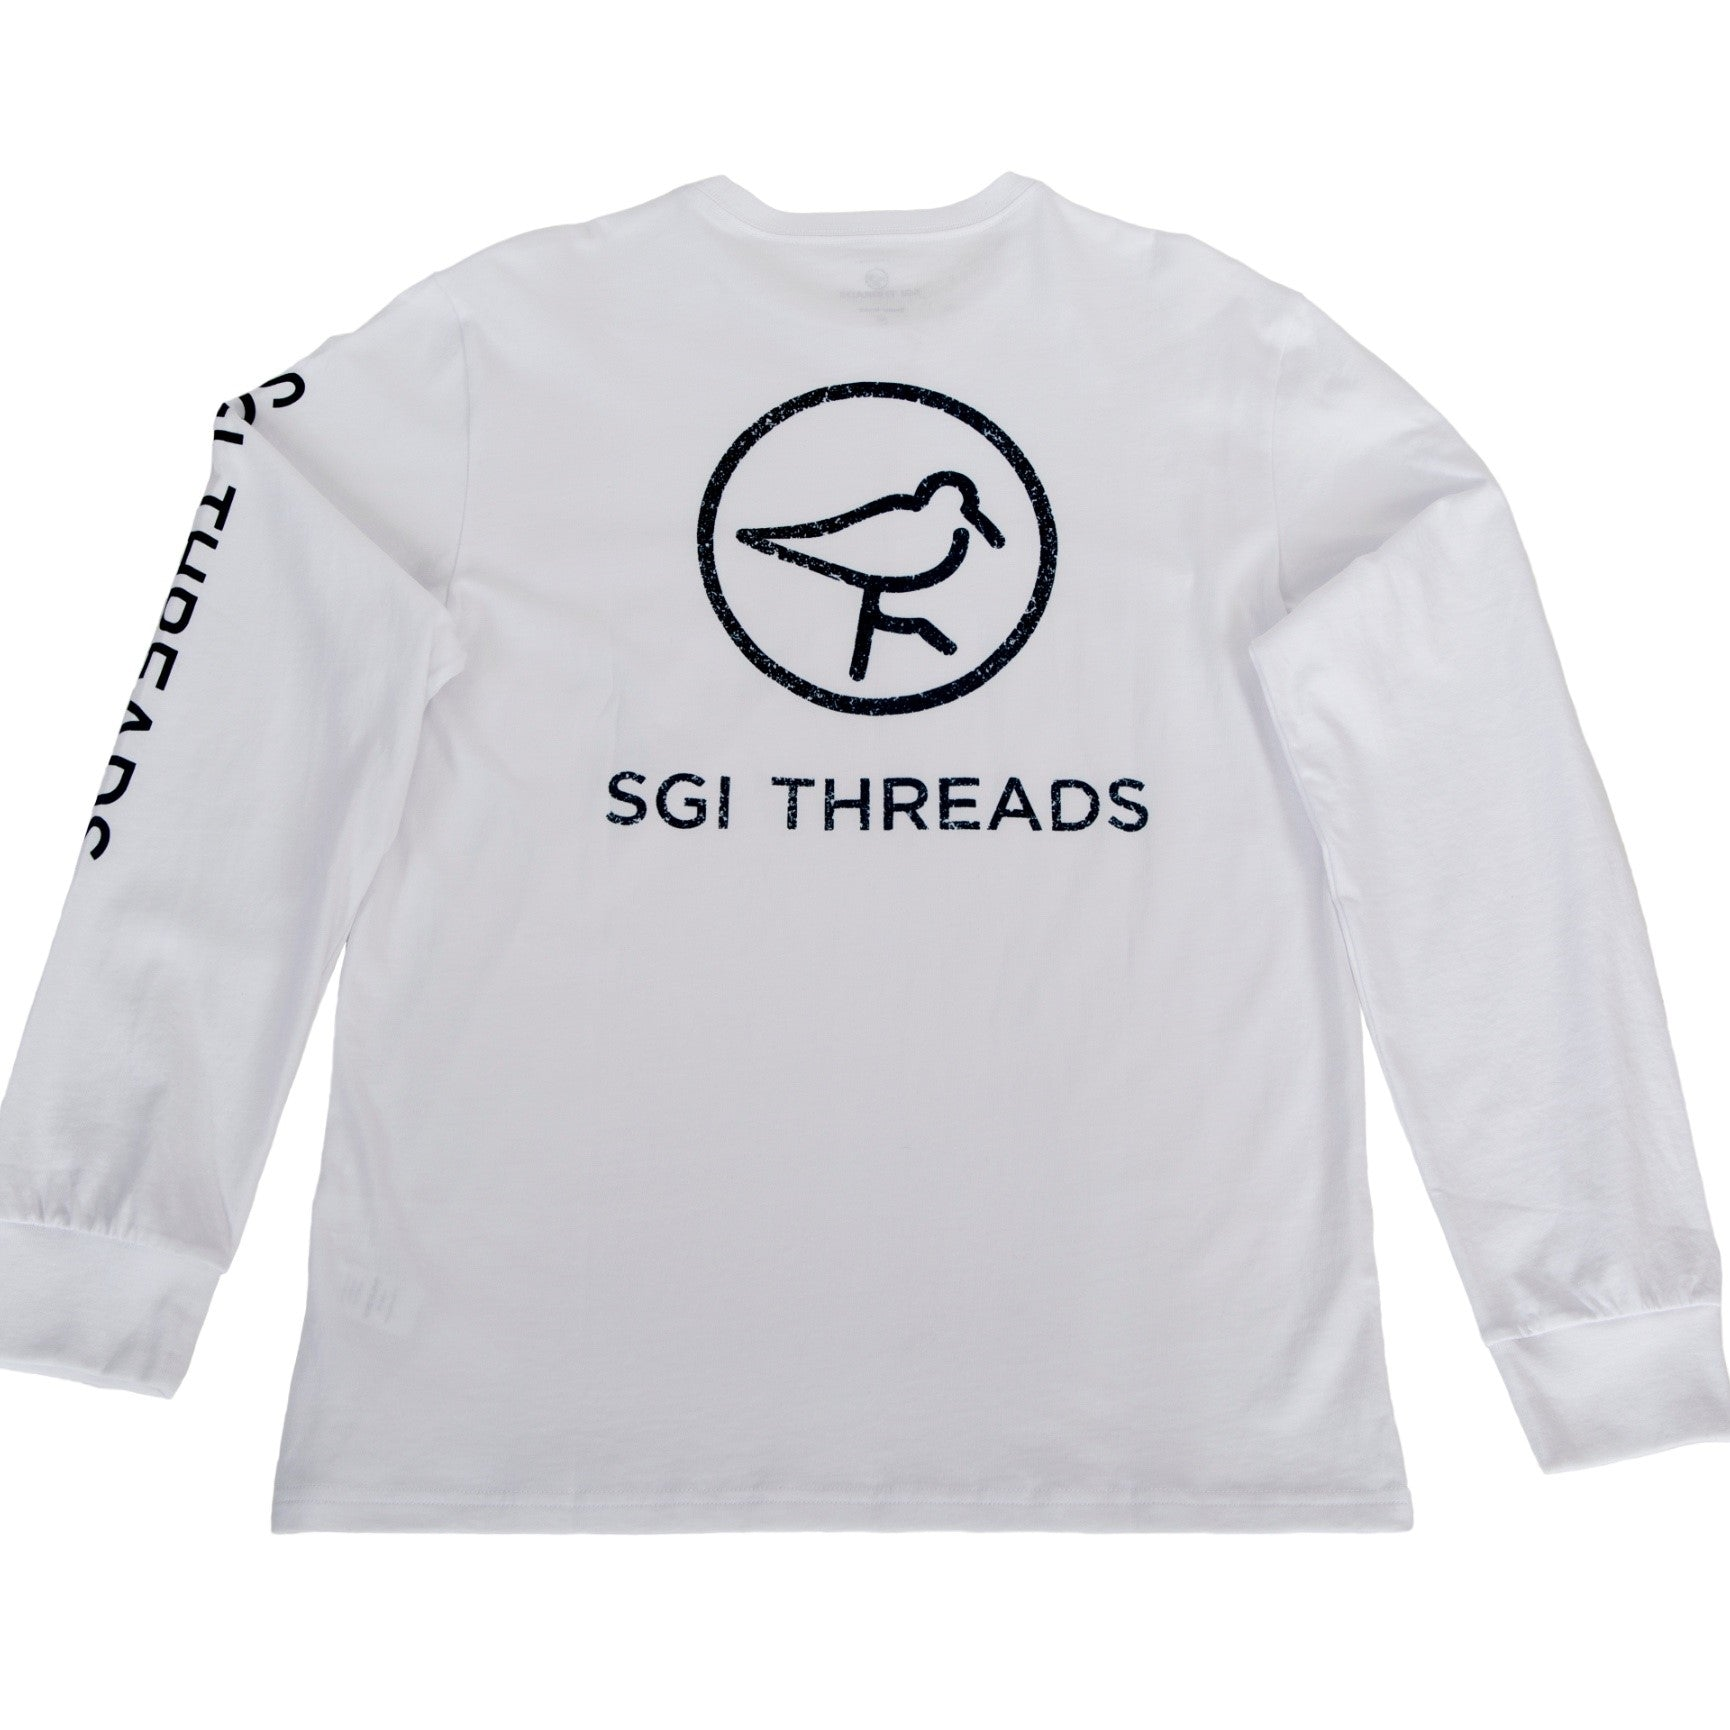 DISTRESSED SGI THREADS LONG-SLEEVE TEE WHITE/NAVY